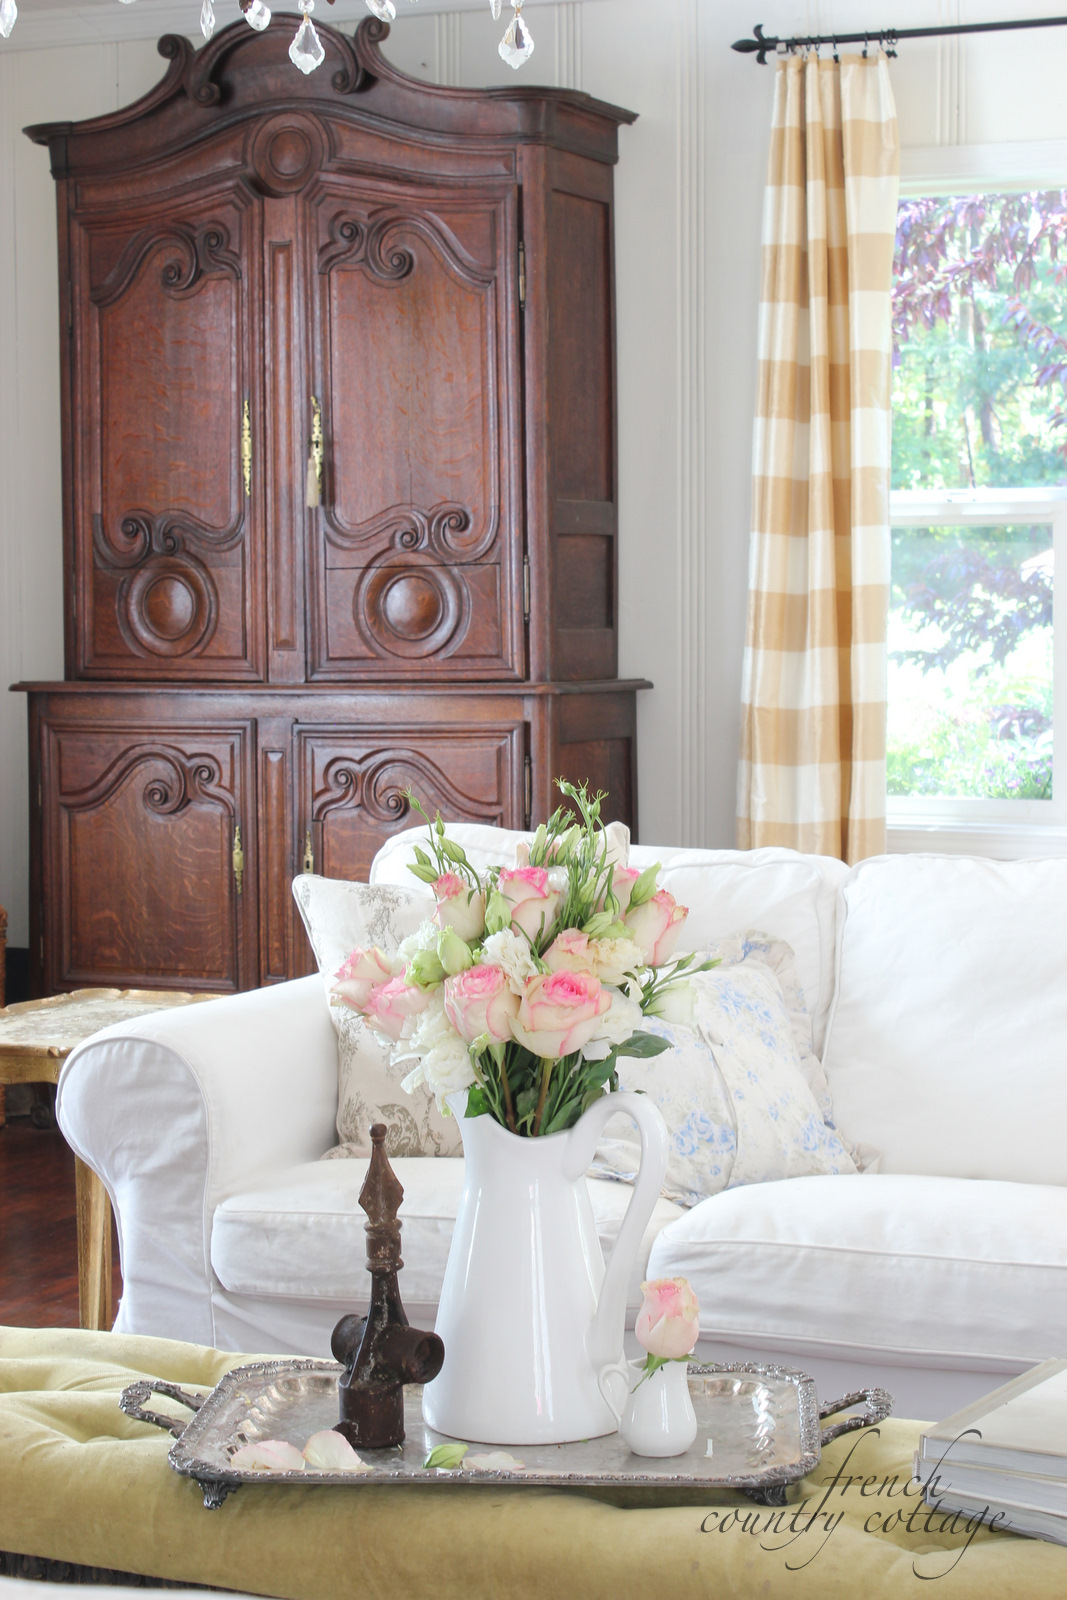 White Couch Living Room Decor: FRENCH COUNTRY COTTAGE